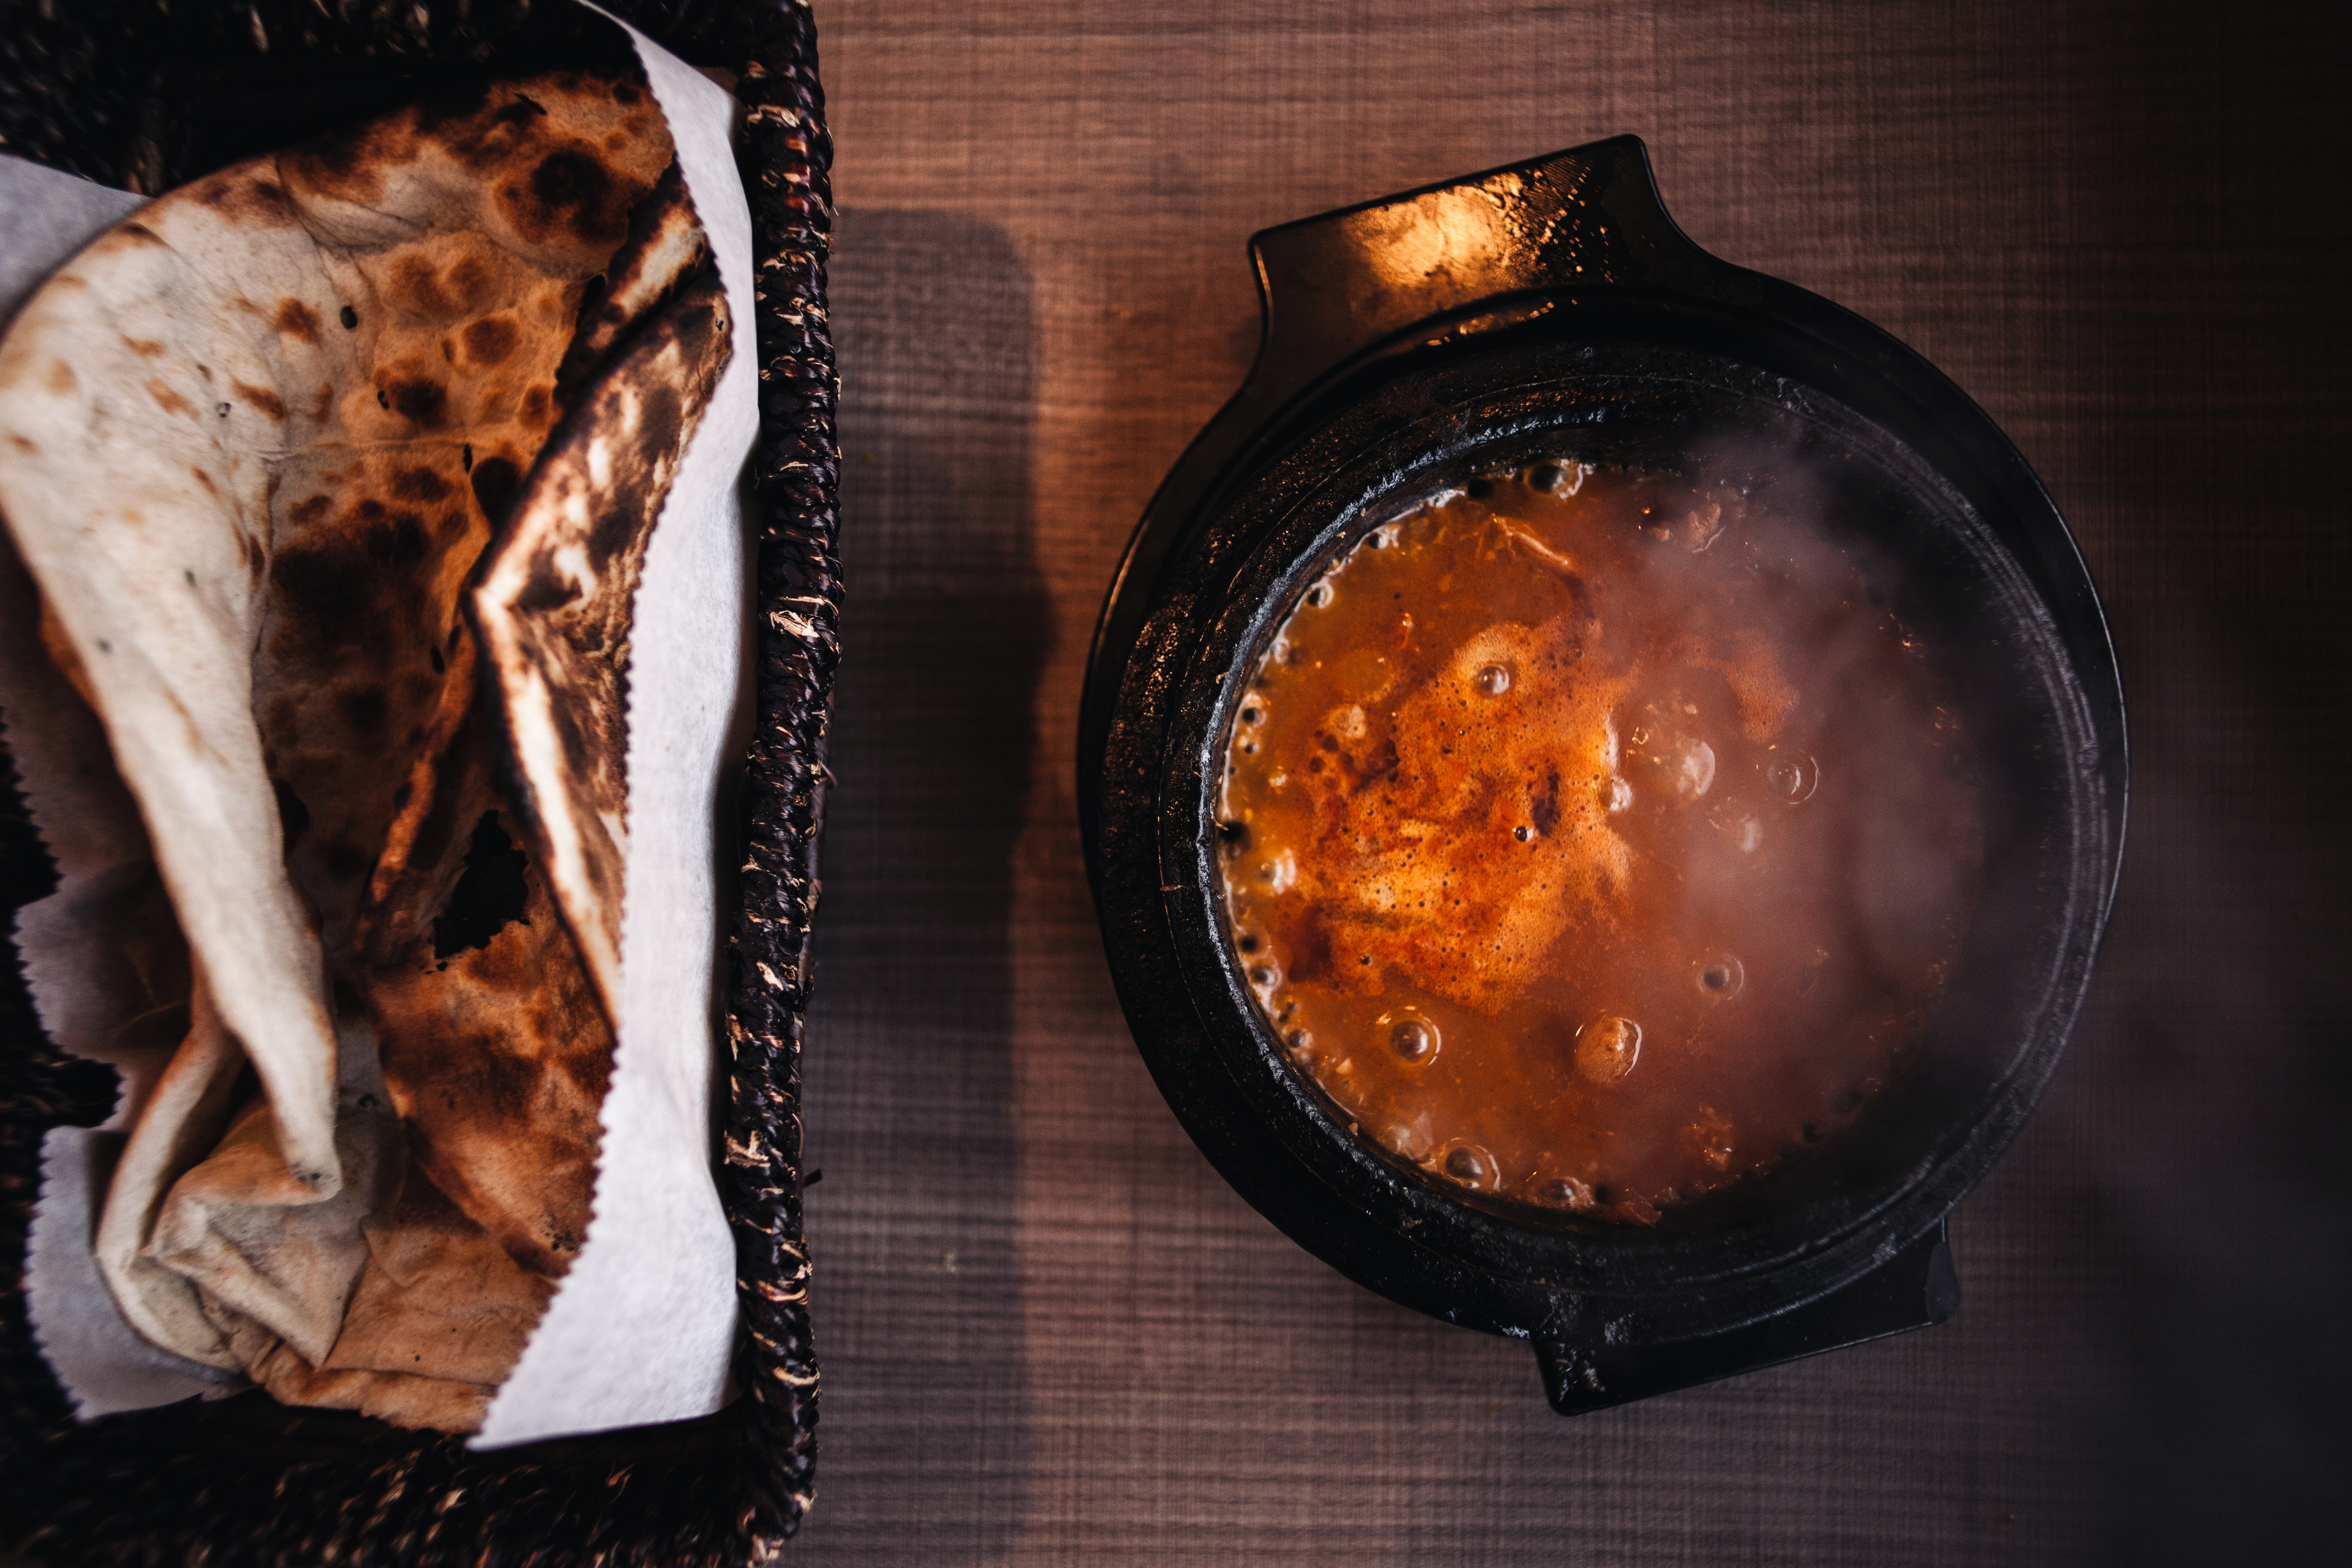 A boiling bowl of a red stew with flatbreads.